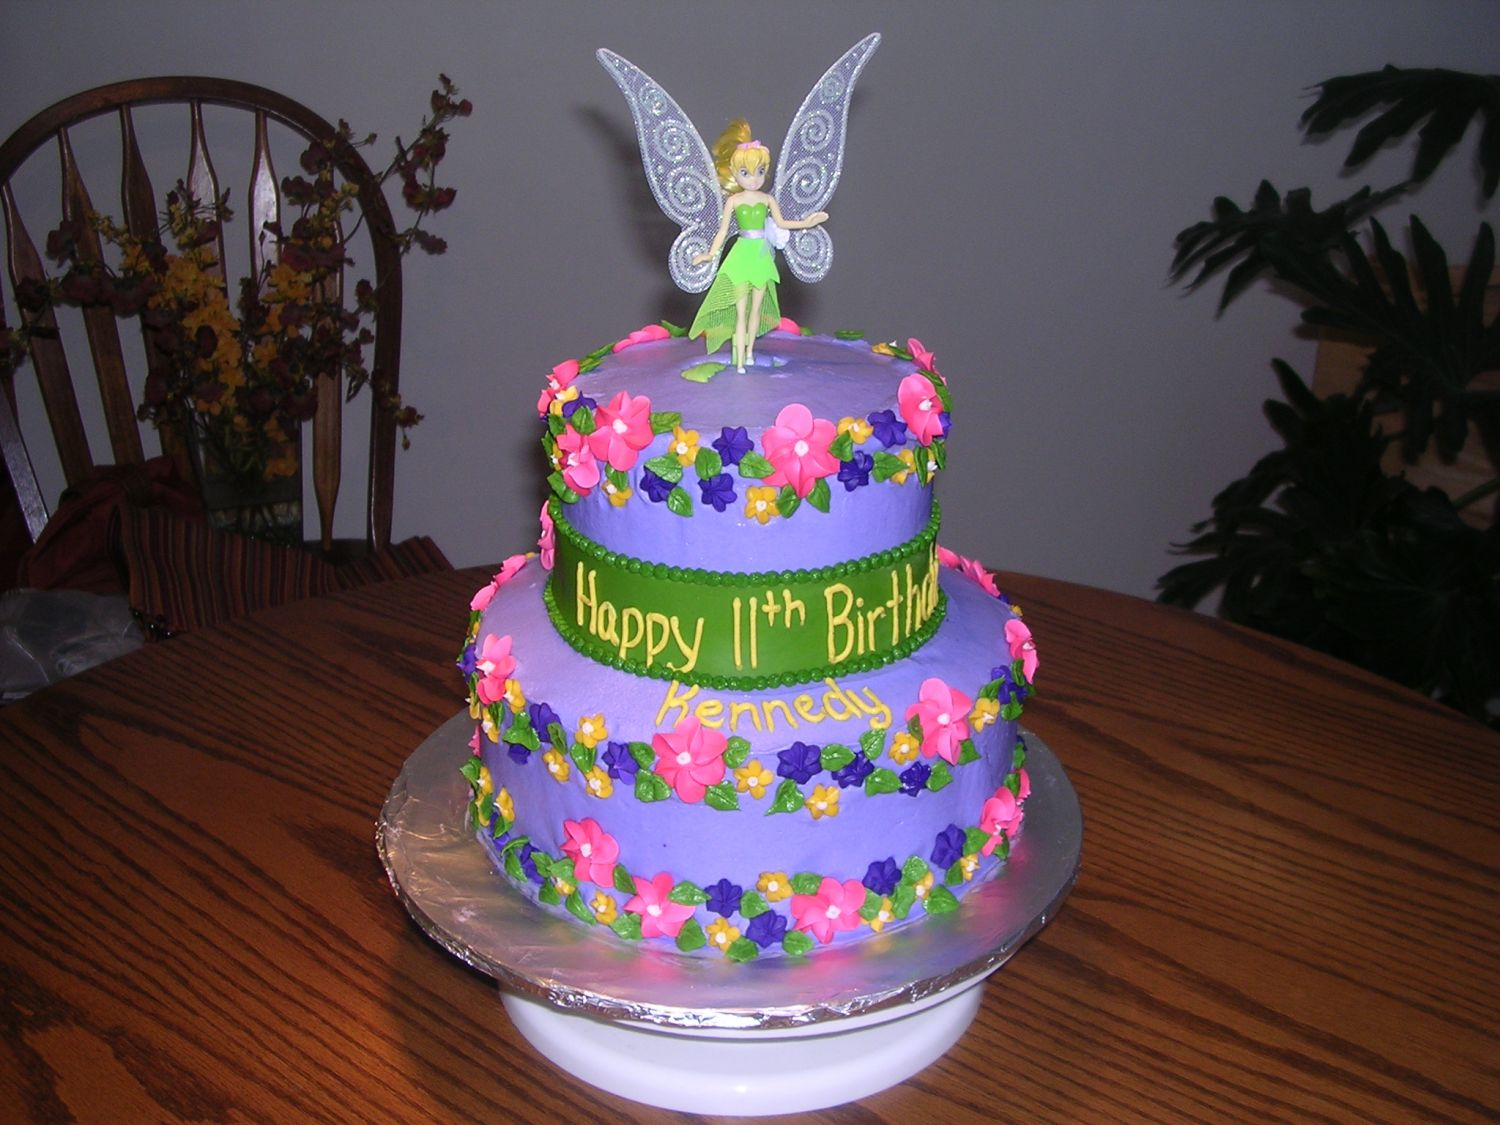 Enjoyable Tinkerbell Cakes Decoration Ideas Little Birthday Cakes Personalised Birthday Cards Sponlily Jamesorg